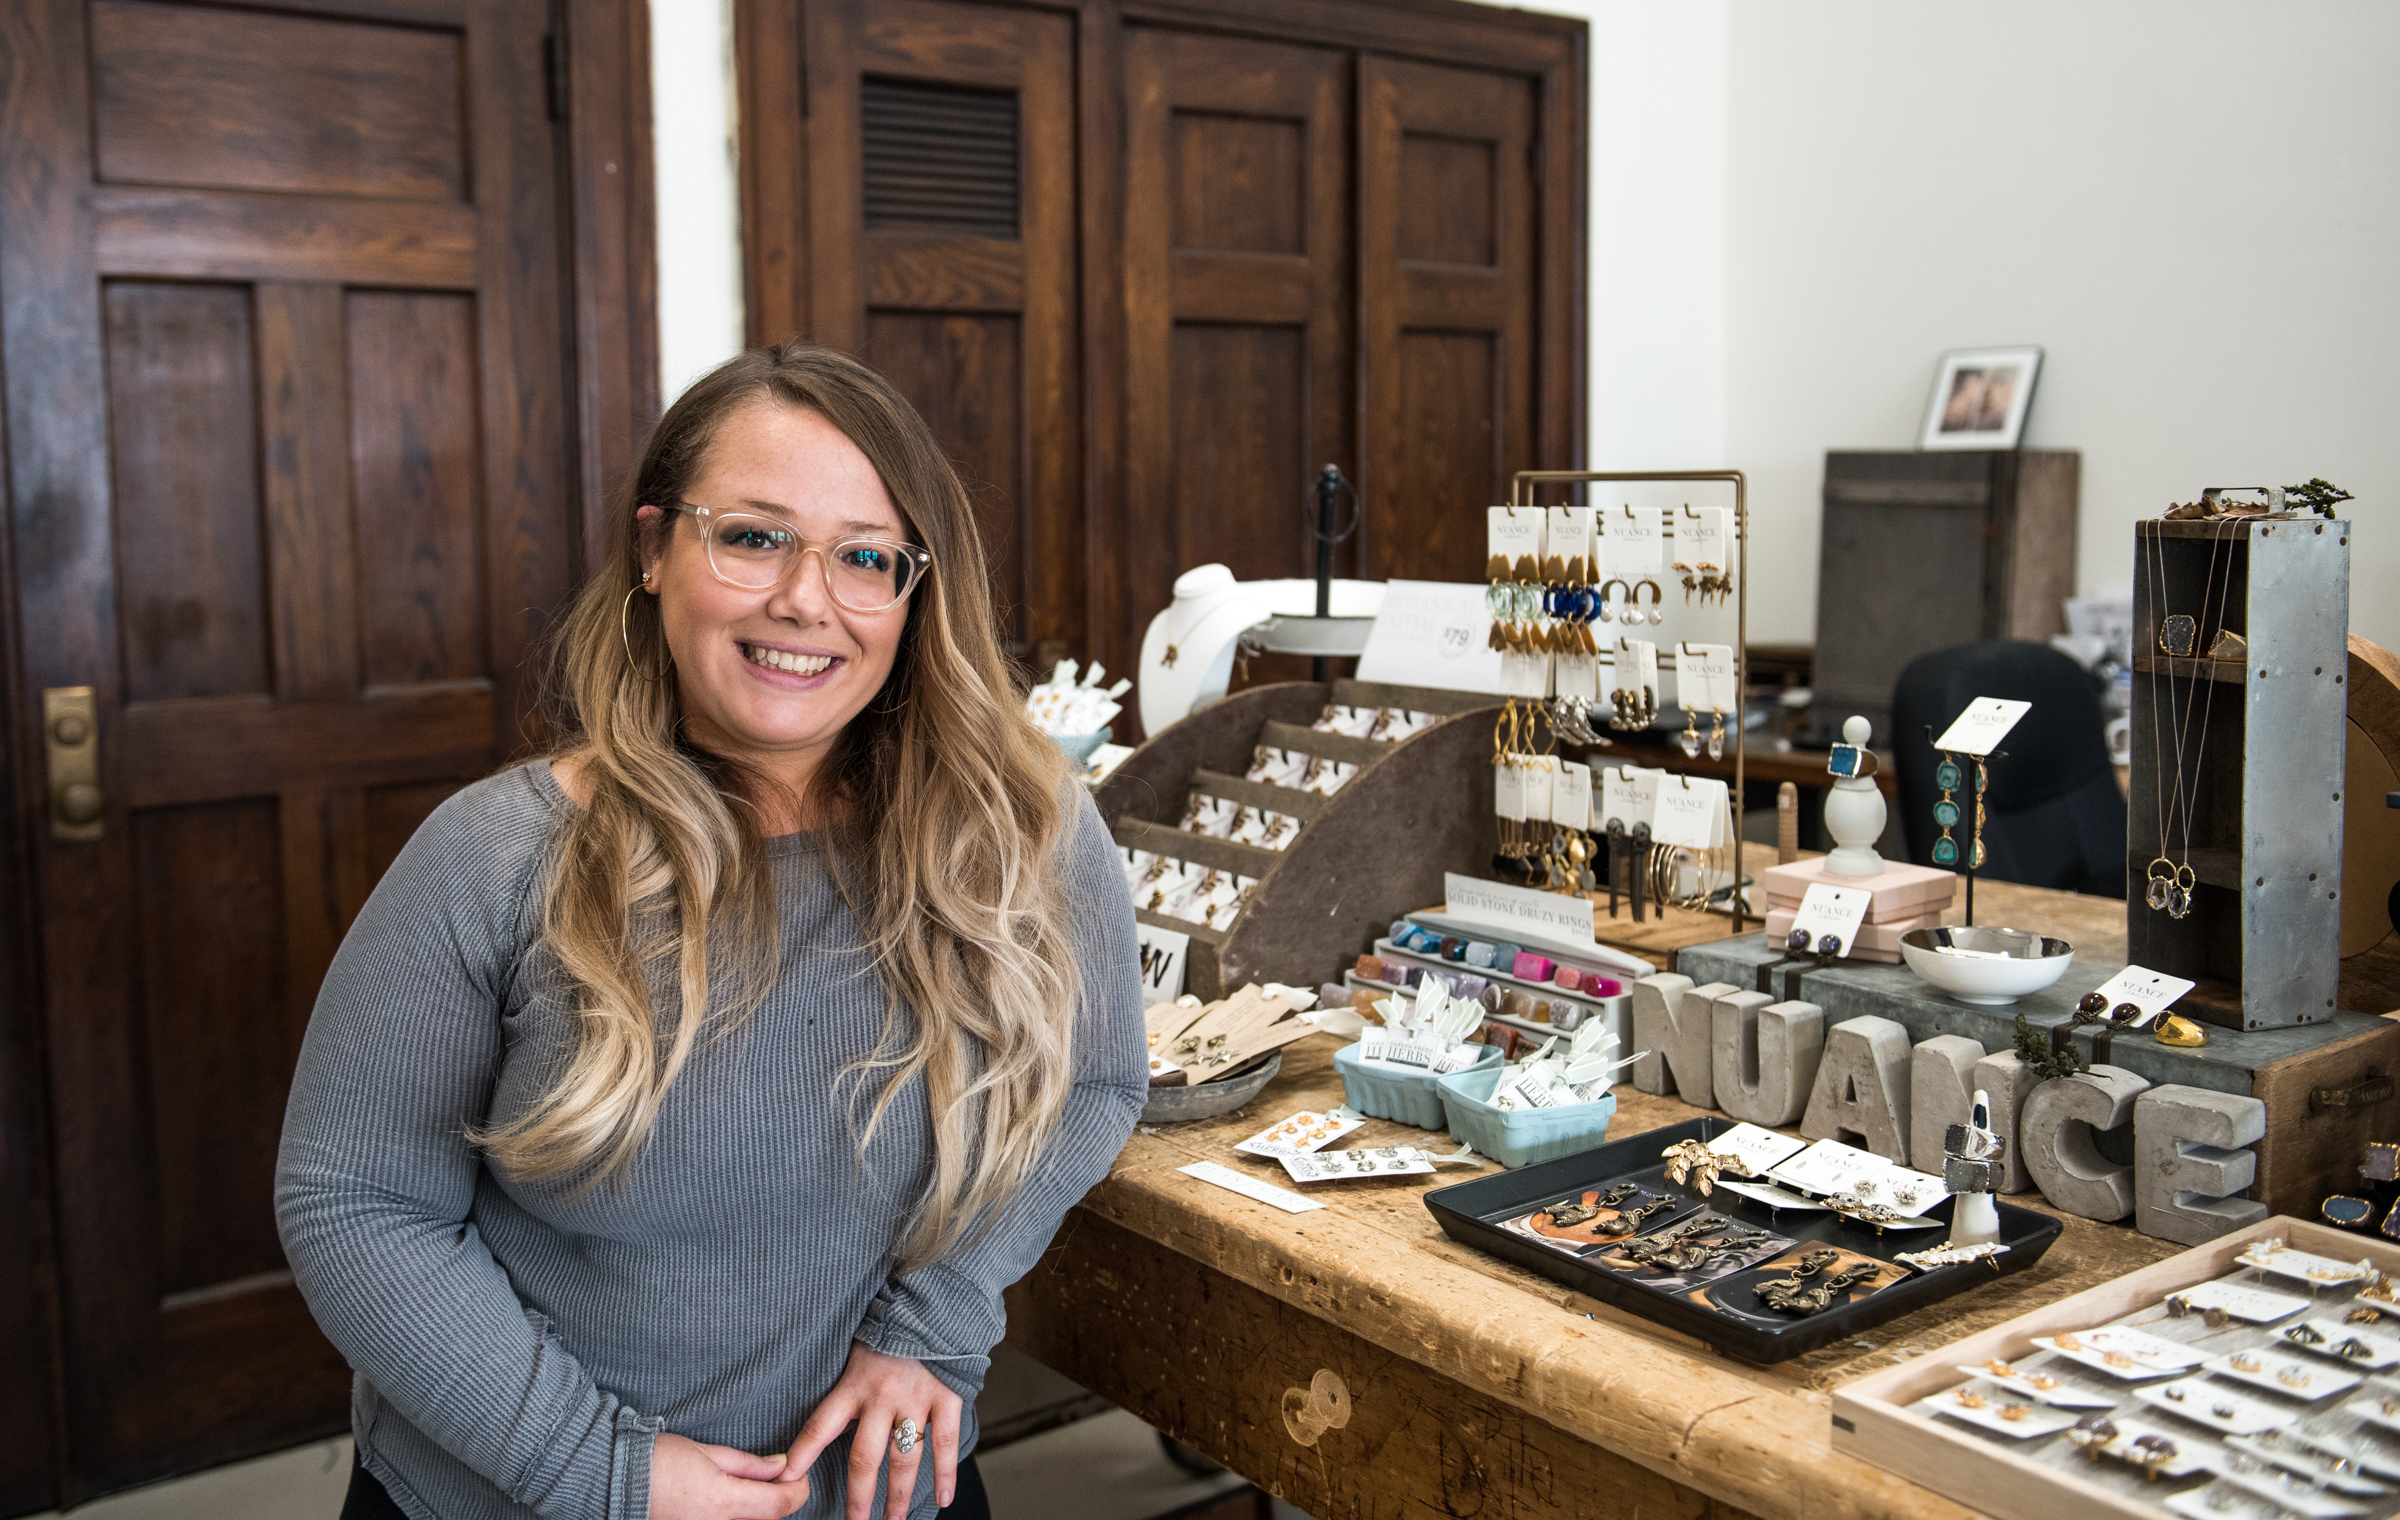 Nuance Jewelry owner Wendee Daelhousen handcrafts an array of vintage-inspired pieces, many of which encompass botanical themes, such as the popular herb-shaped earrings (basil, rosemary, and parsley) attached to plantable, seed-infused cards.